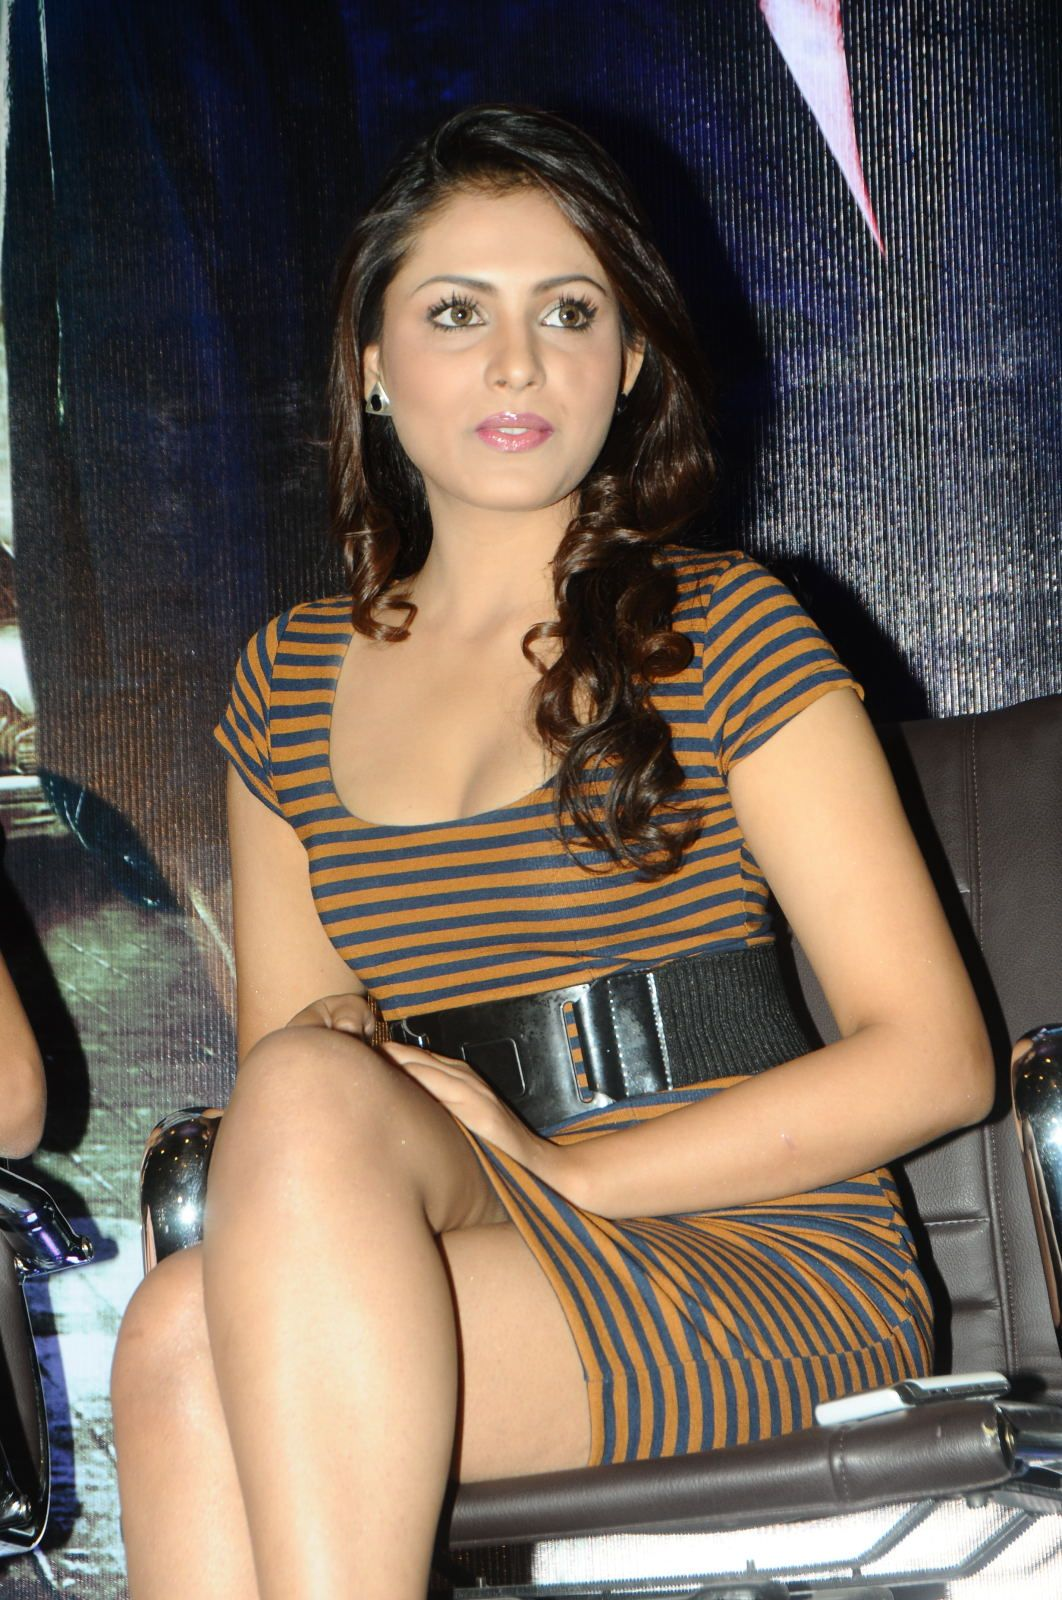 Madhu Shalini Nude Photos Best madhu shalini legs | madhu shalini super sexy legs and cleavage